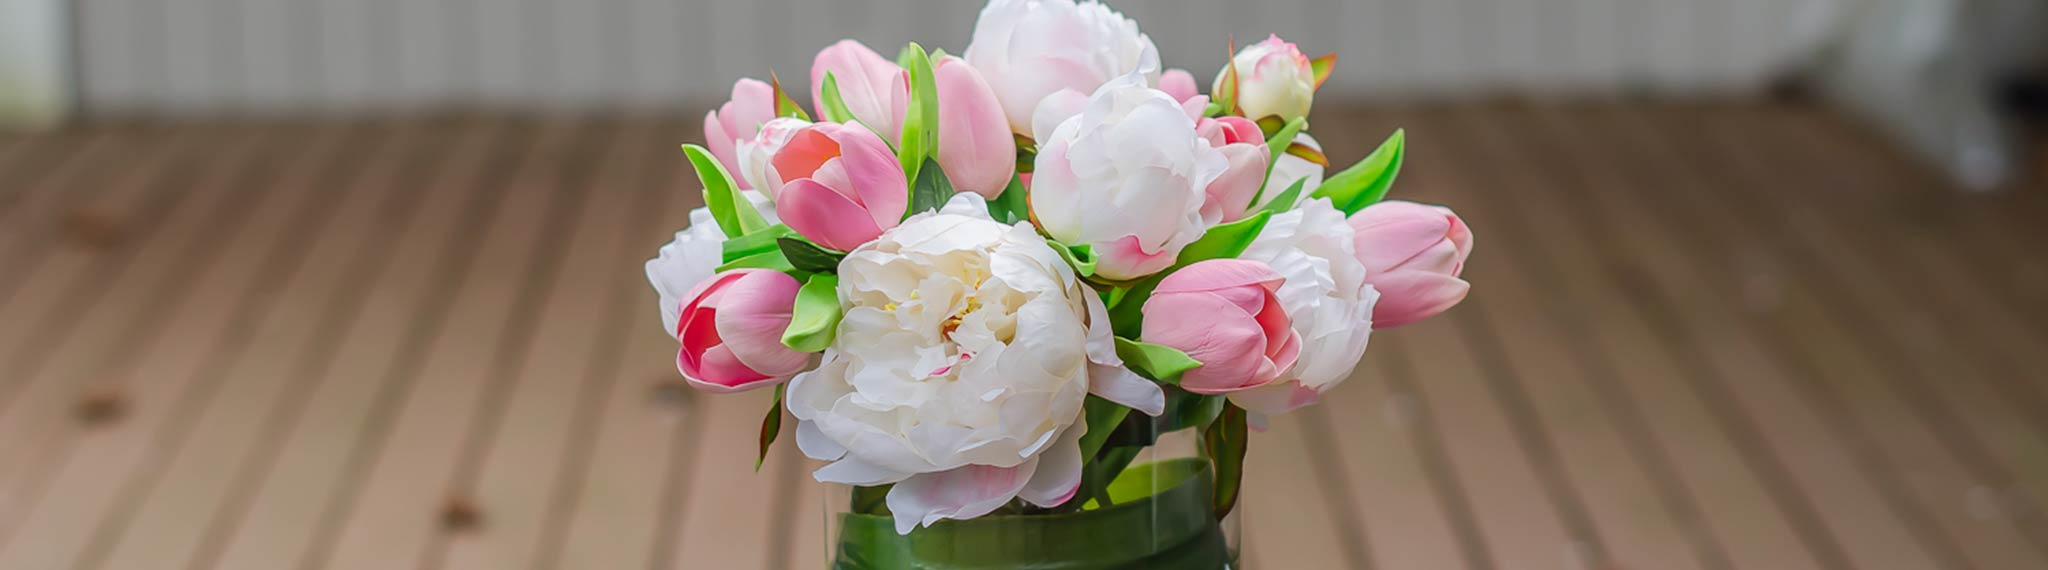 What Are Real Touch Artificial Flowers Flovery